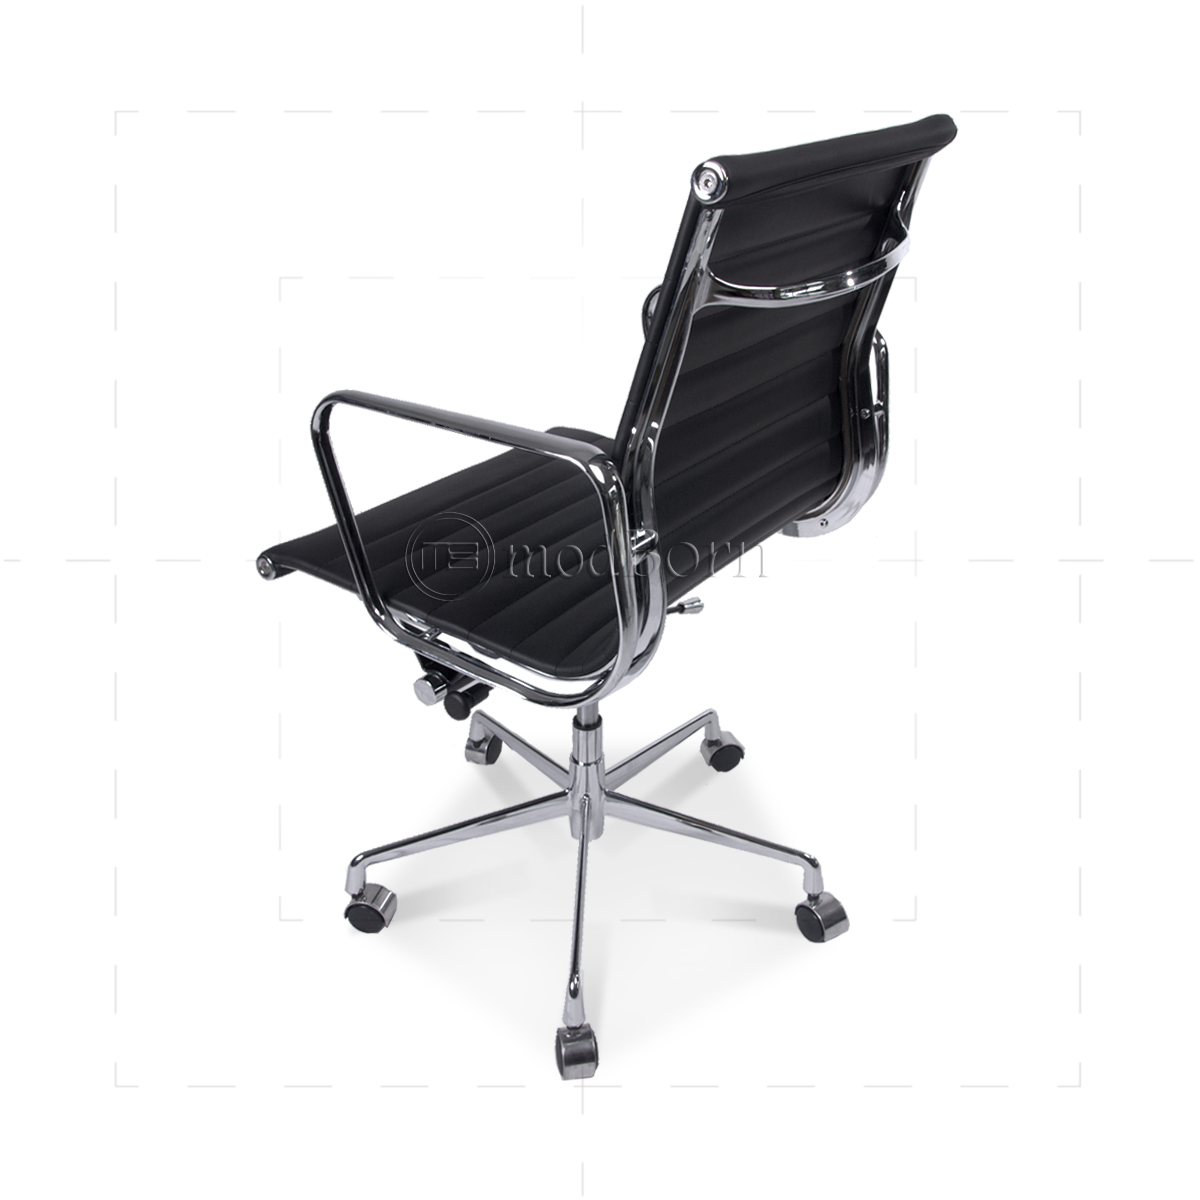 eames replica chairs uk double camping chair ea117 style office low back ribbed black